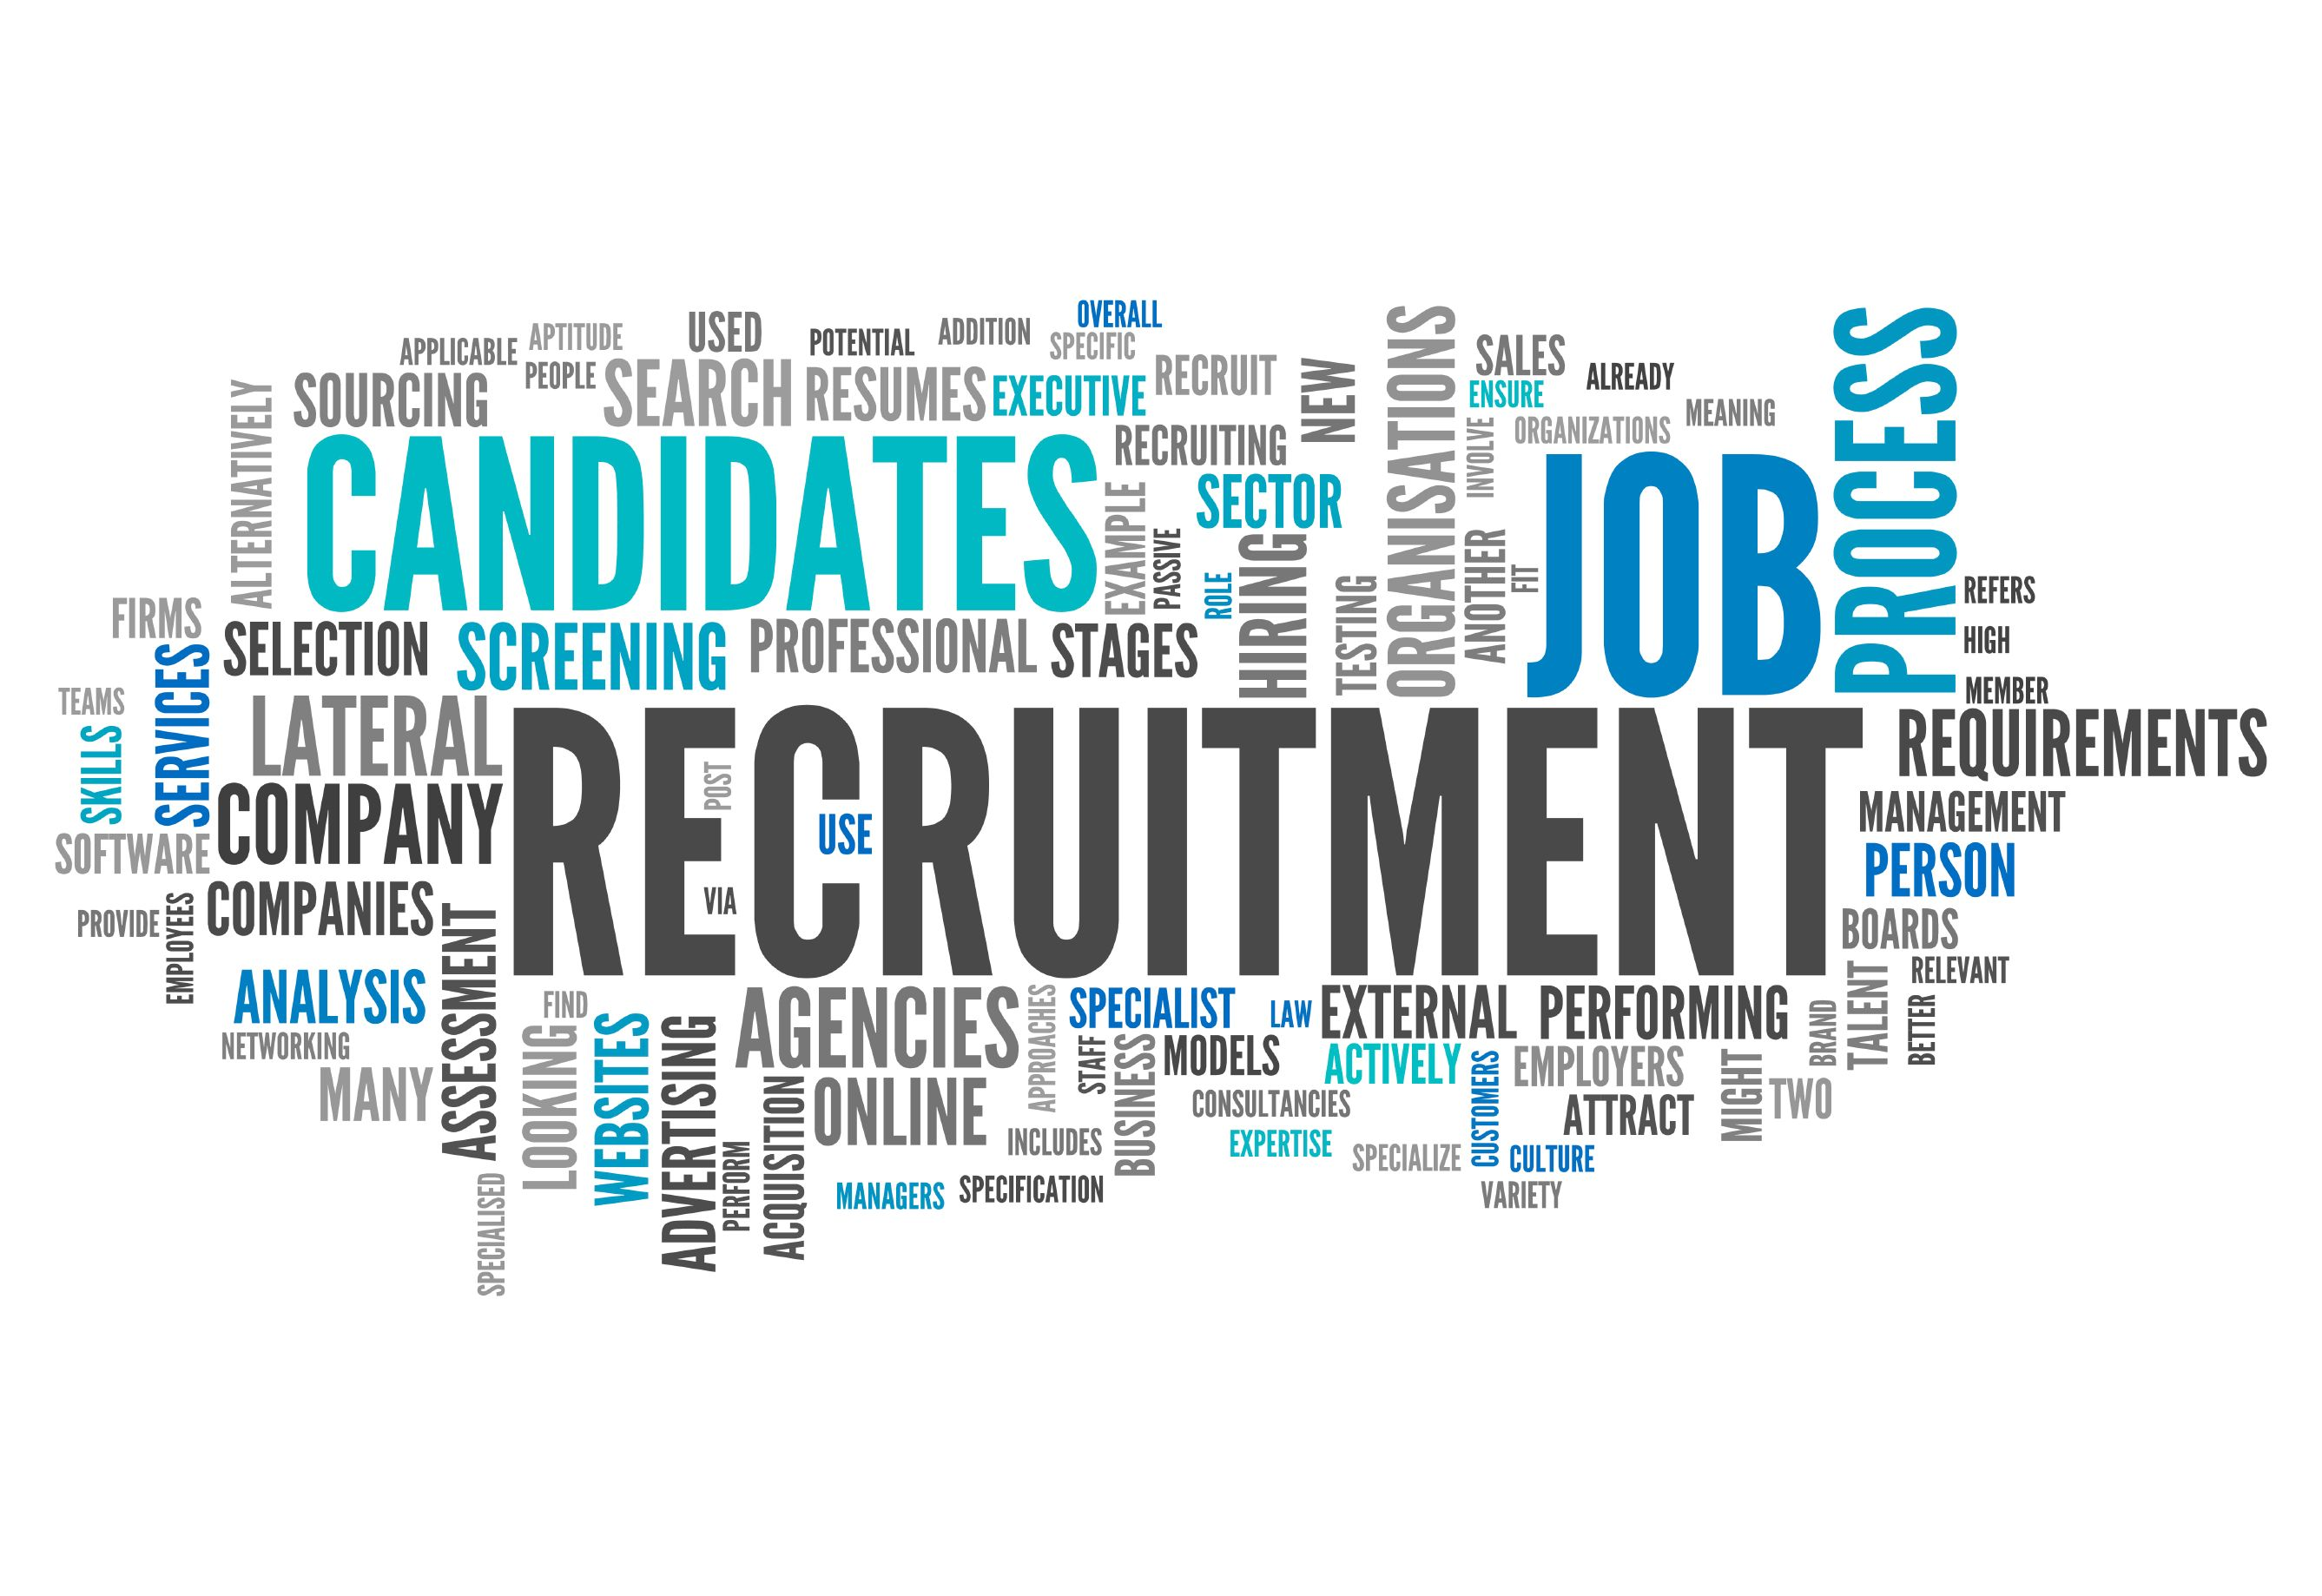 Preparing for a Corporate Job by Working through Recruitment Agencies